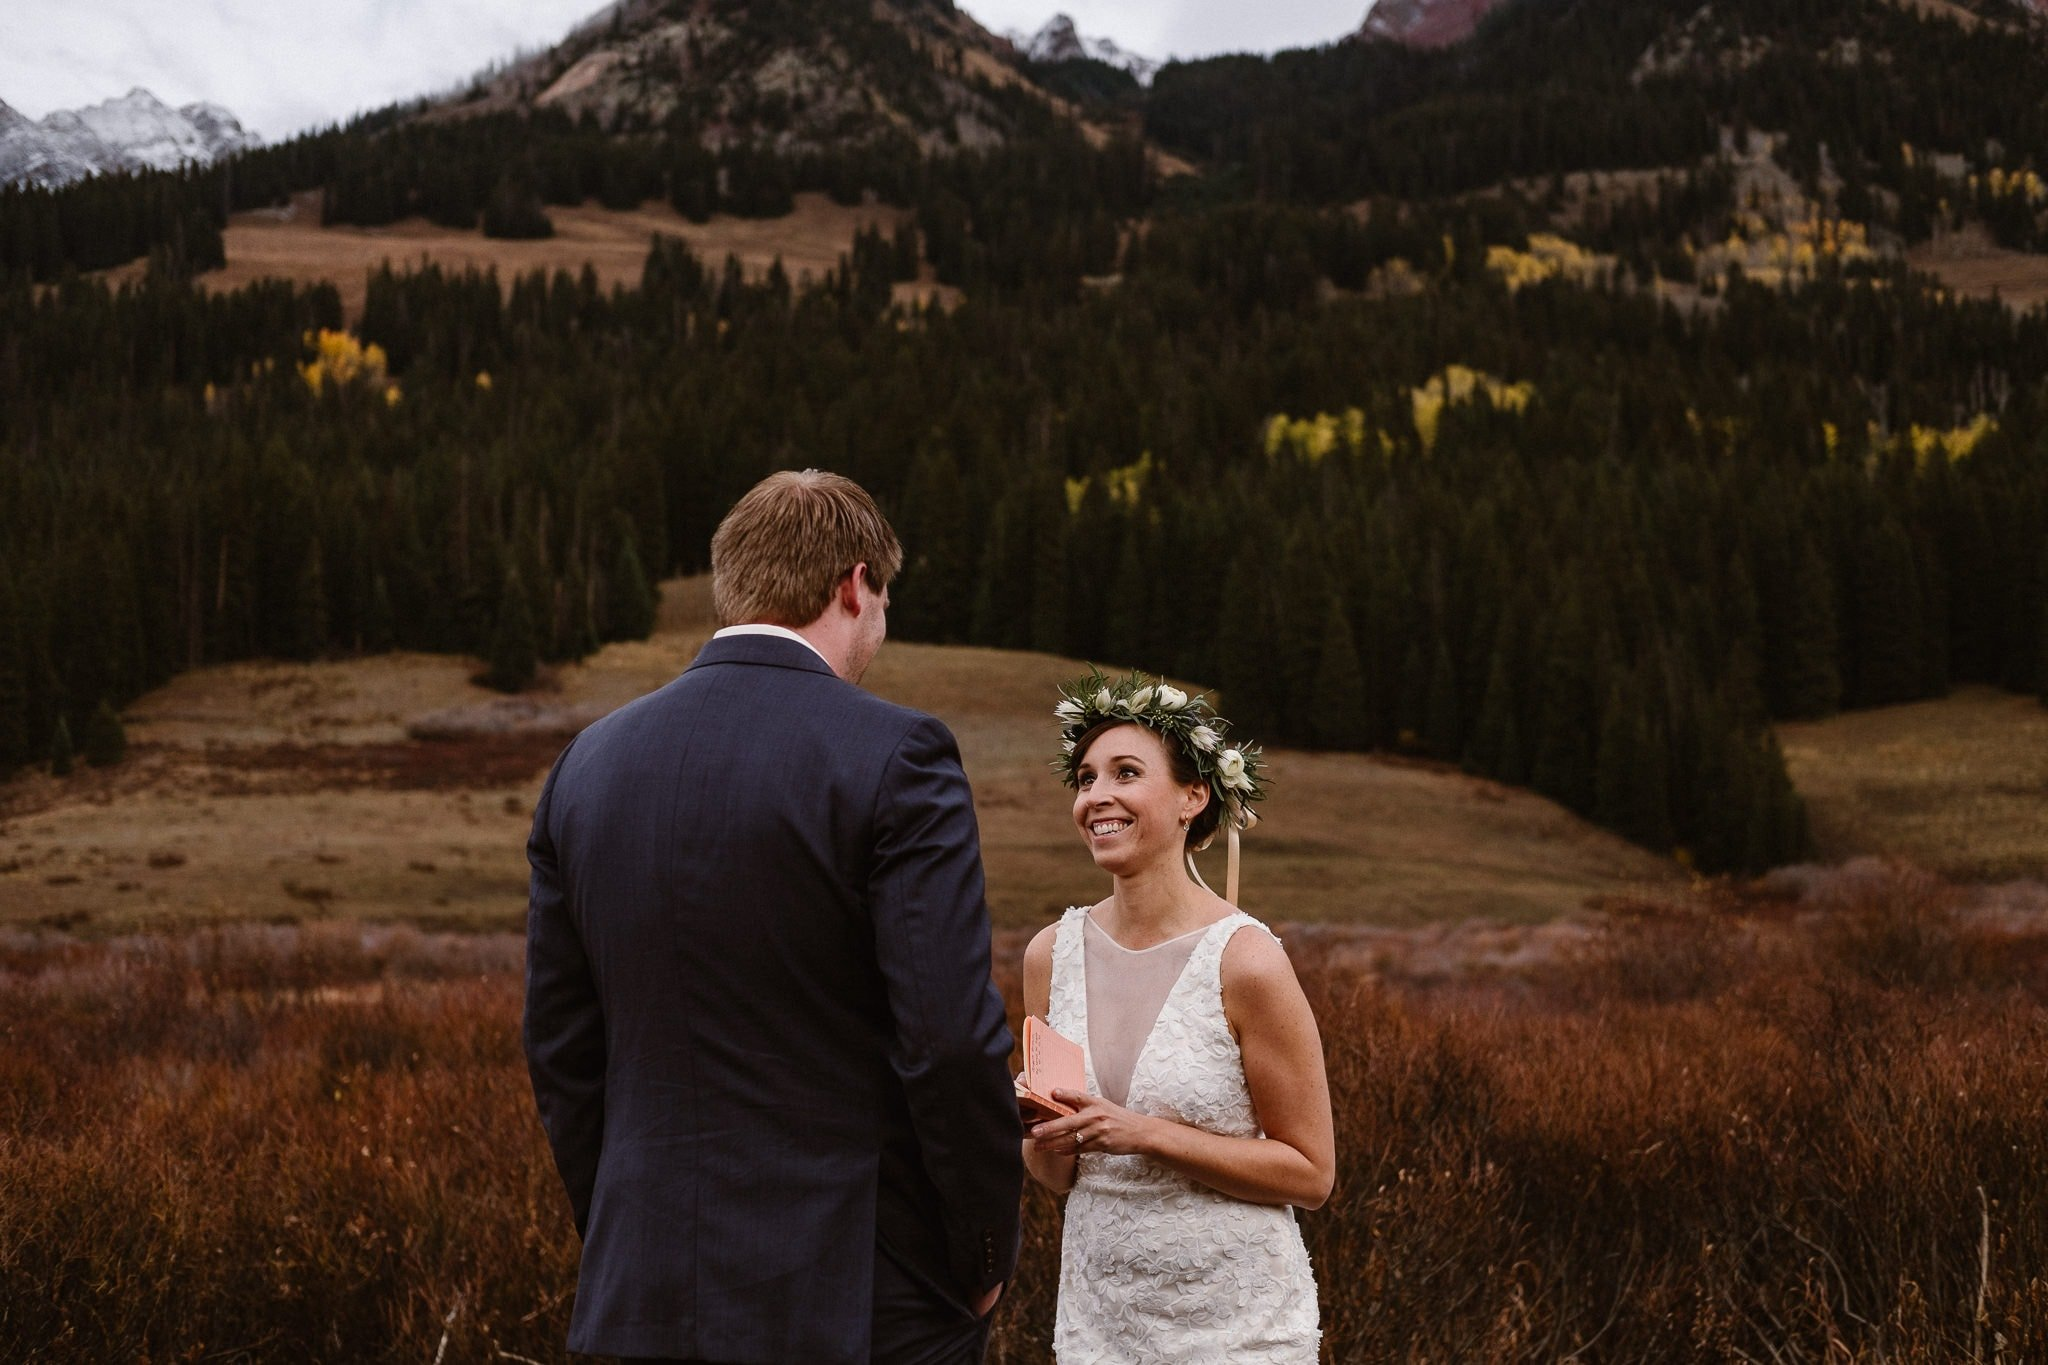 Angela + Scott's Crested Butte Elopement